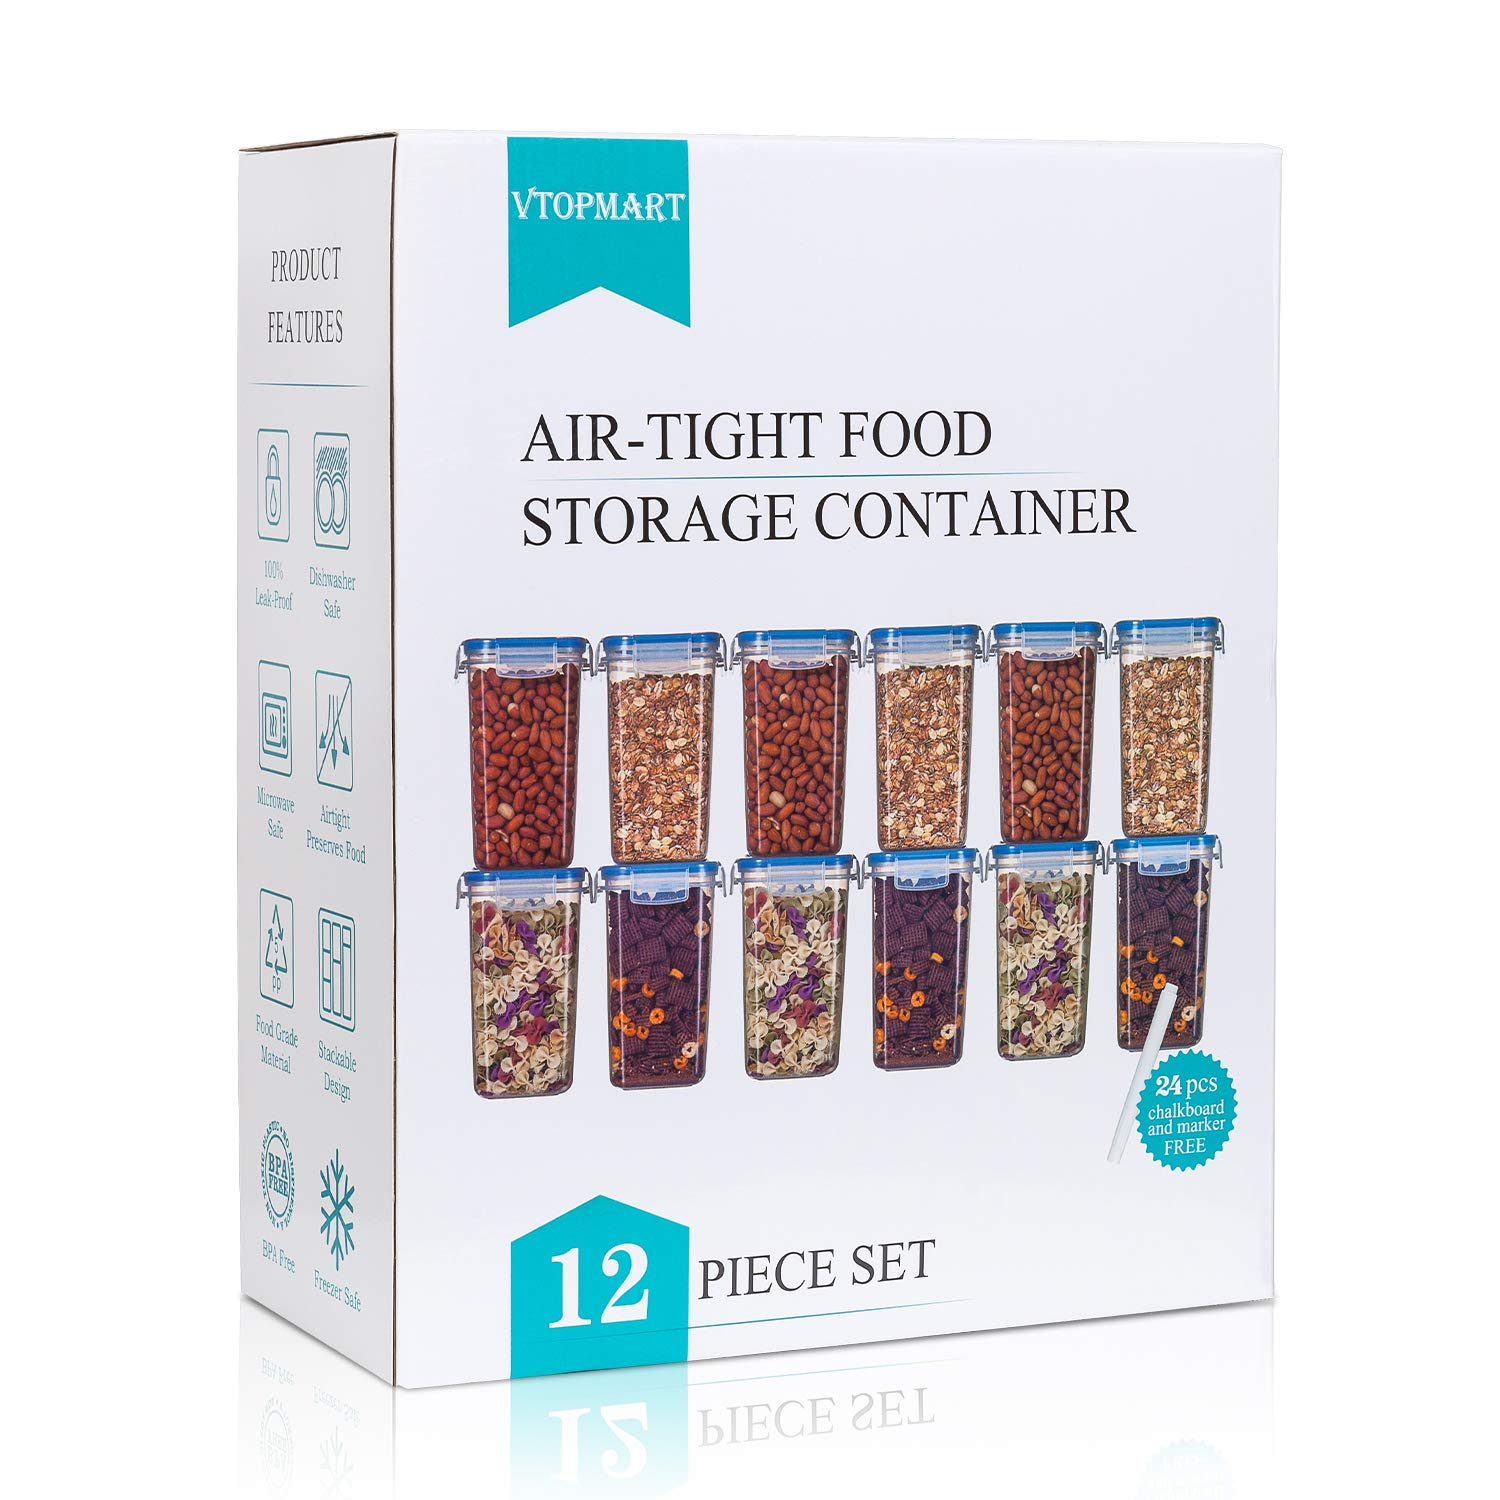 Vtopmart Airtight Food Storage Containers 12 Pieces - Plastic PBA Free Kitchen Pantry Storage Containers for Sugar,Flour and Baking Supplies - Dishwasher Safe - 24 Chalkboard Labels and 1 Marker by Vtopmart (Image #7)